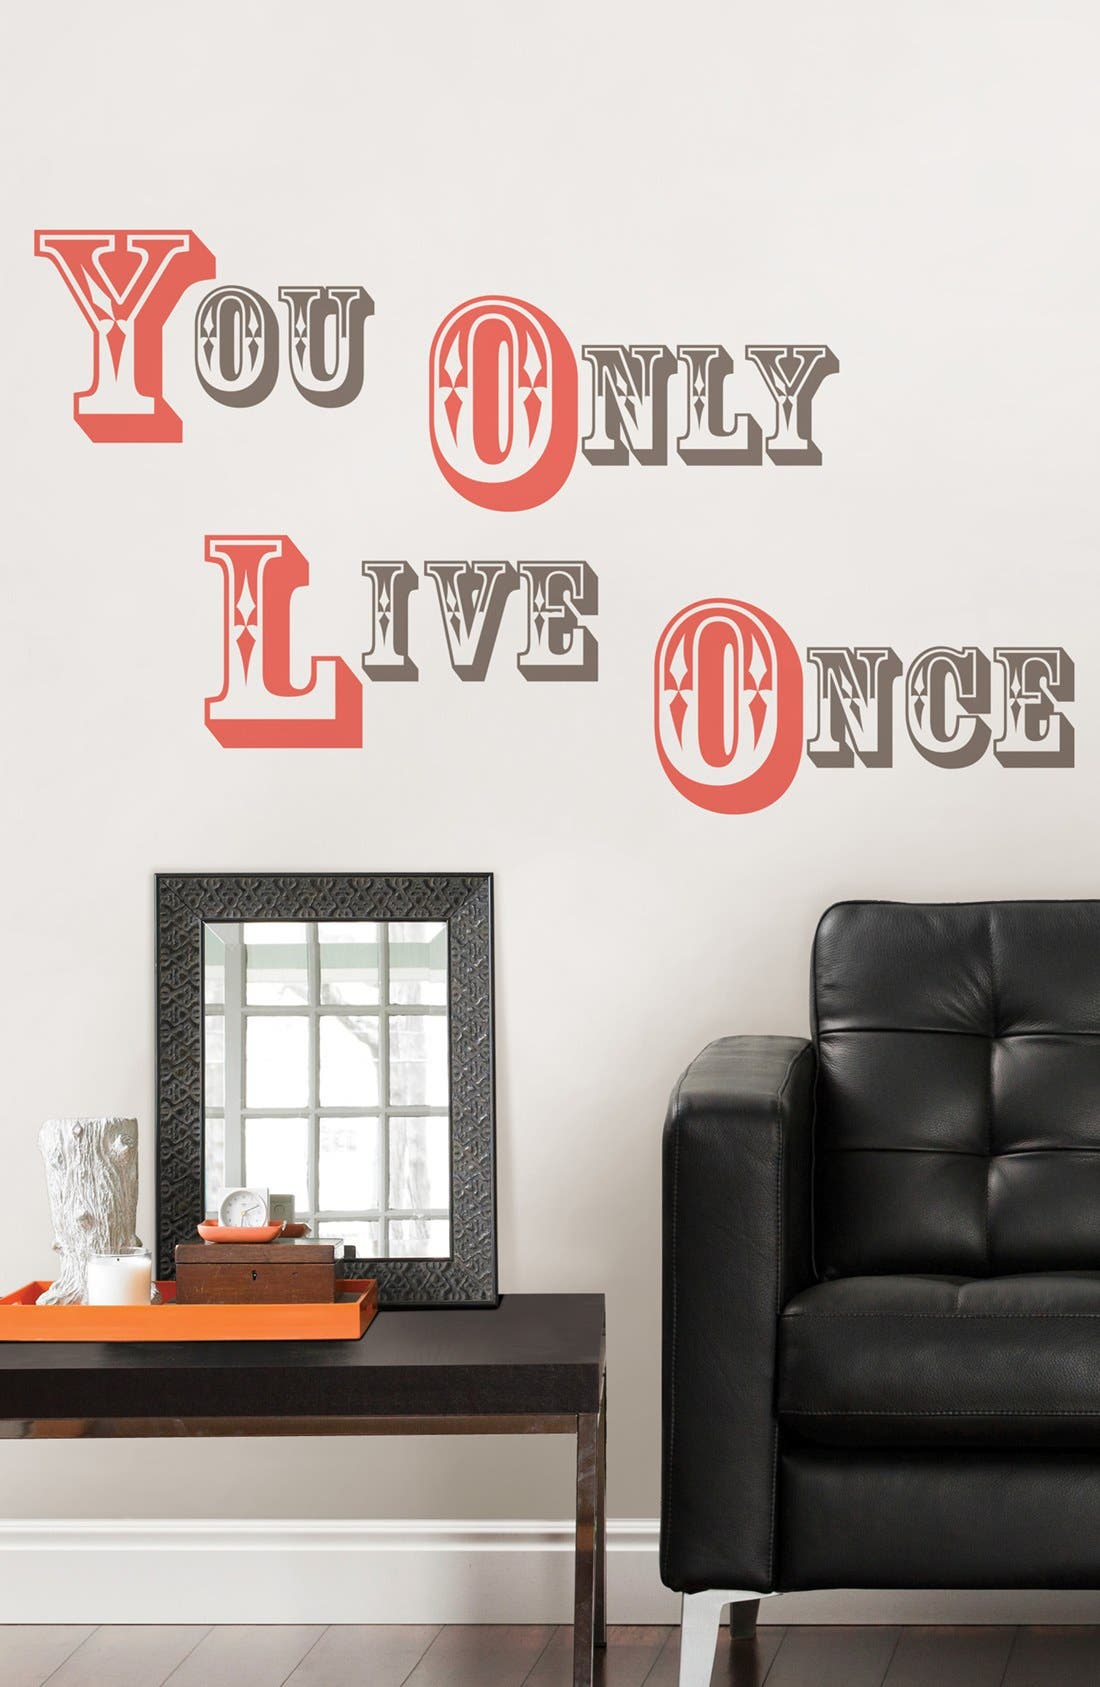 Alternate Image 1 Selected - Wallpops 'You Only Live Once' Wall Art